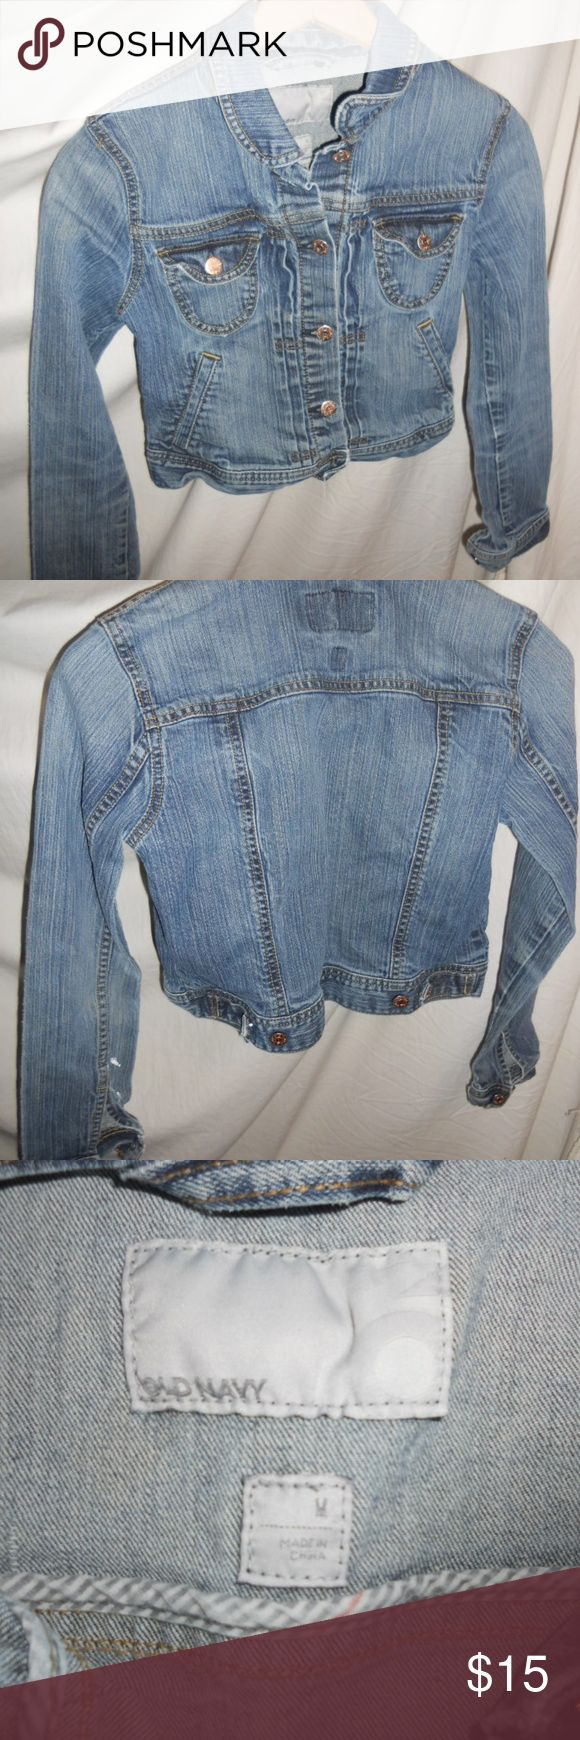 "Old Navy Girls Kids Jean Jacket Size Medium Old Navy Girls Kids Jean Jacket Size Medium. Jacket is in excellent condition.  Additional Measurements.  Length - 19"" Chest - 16"" Arm Length - 24"" Old Navy Jackets & Coats Jean Jackets"